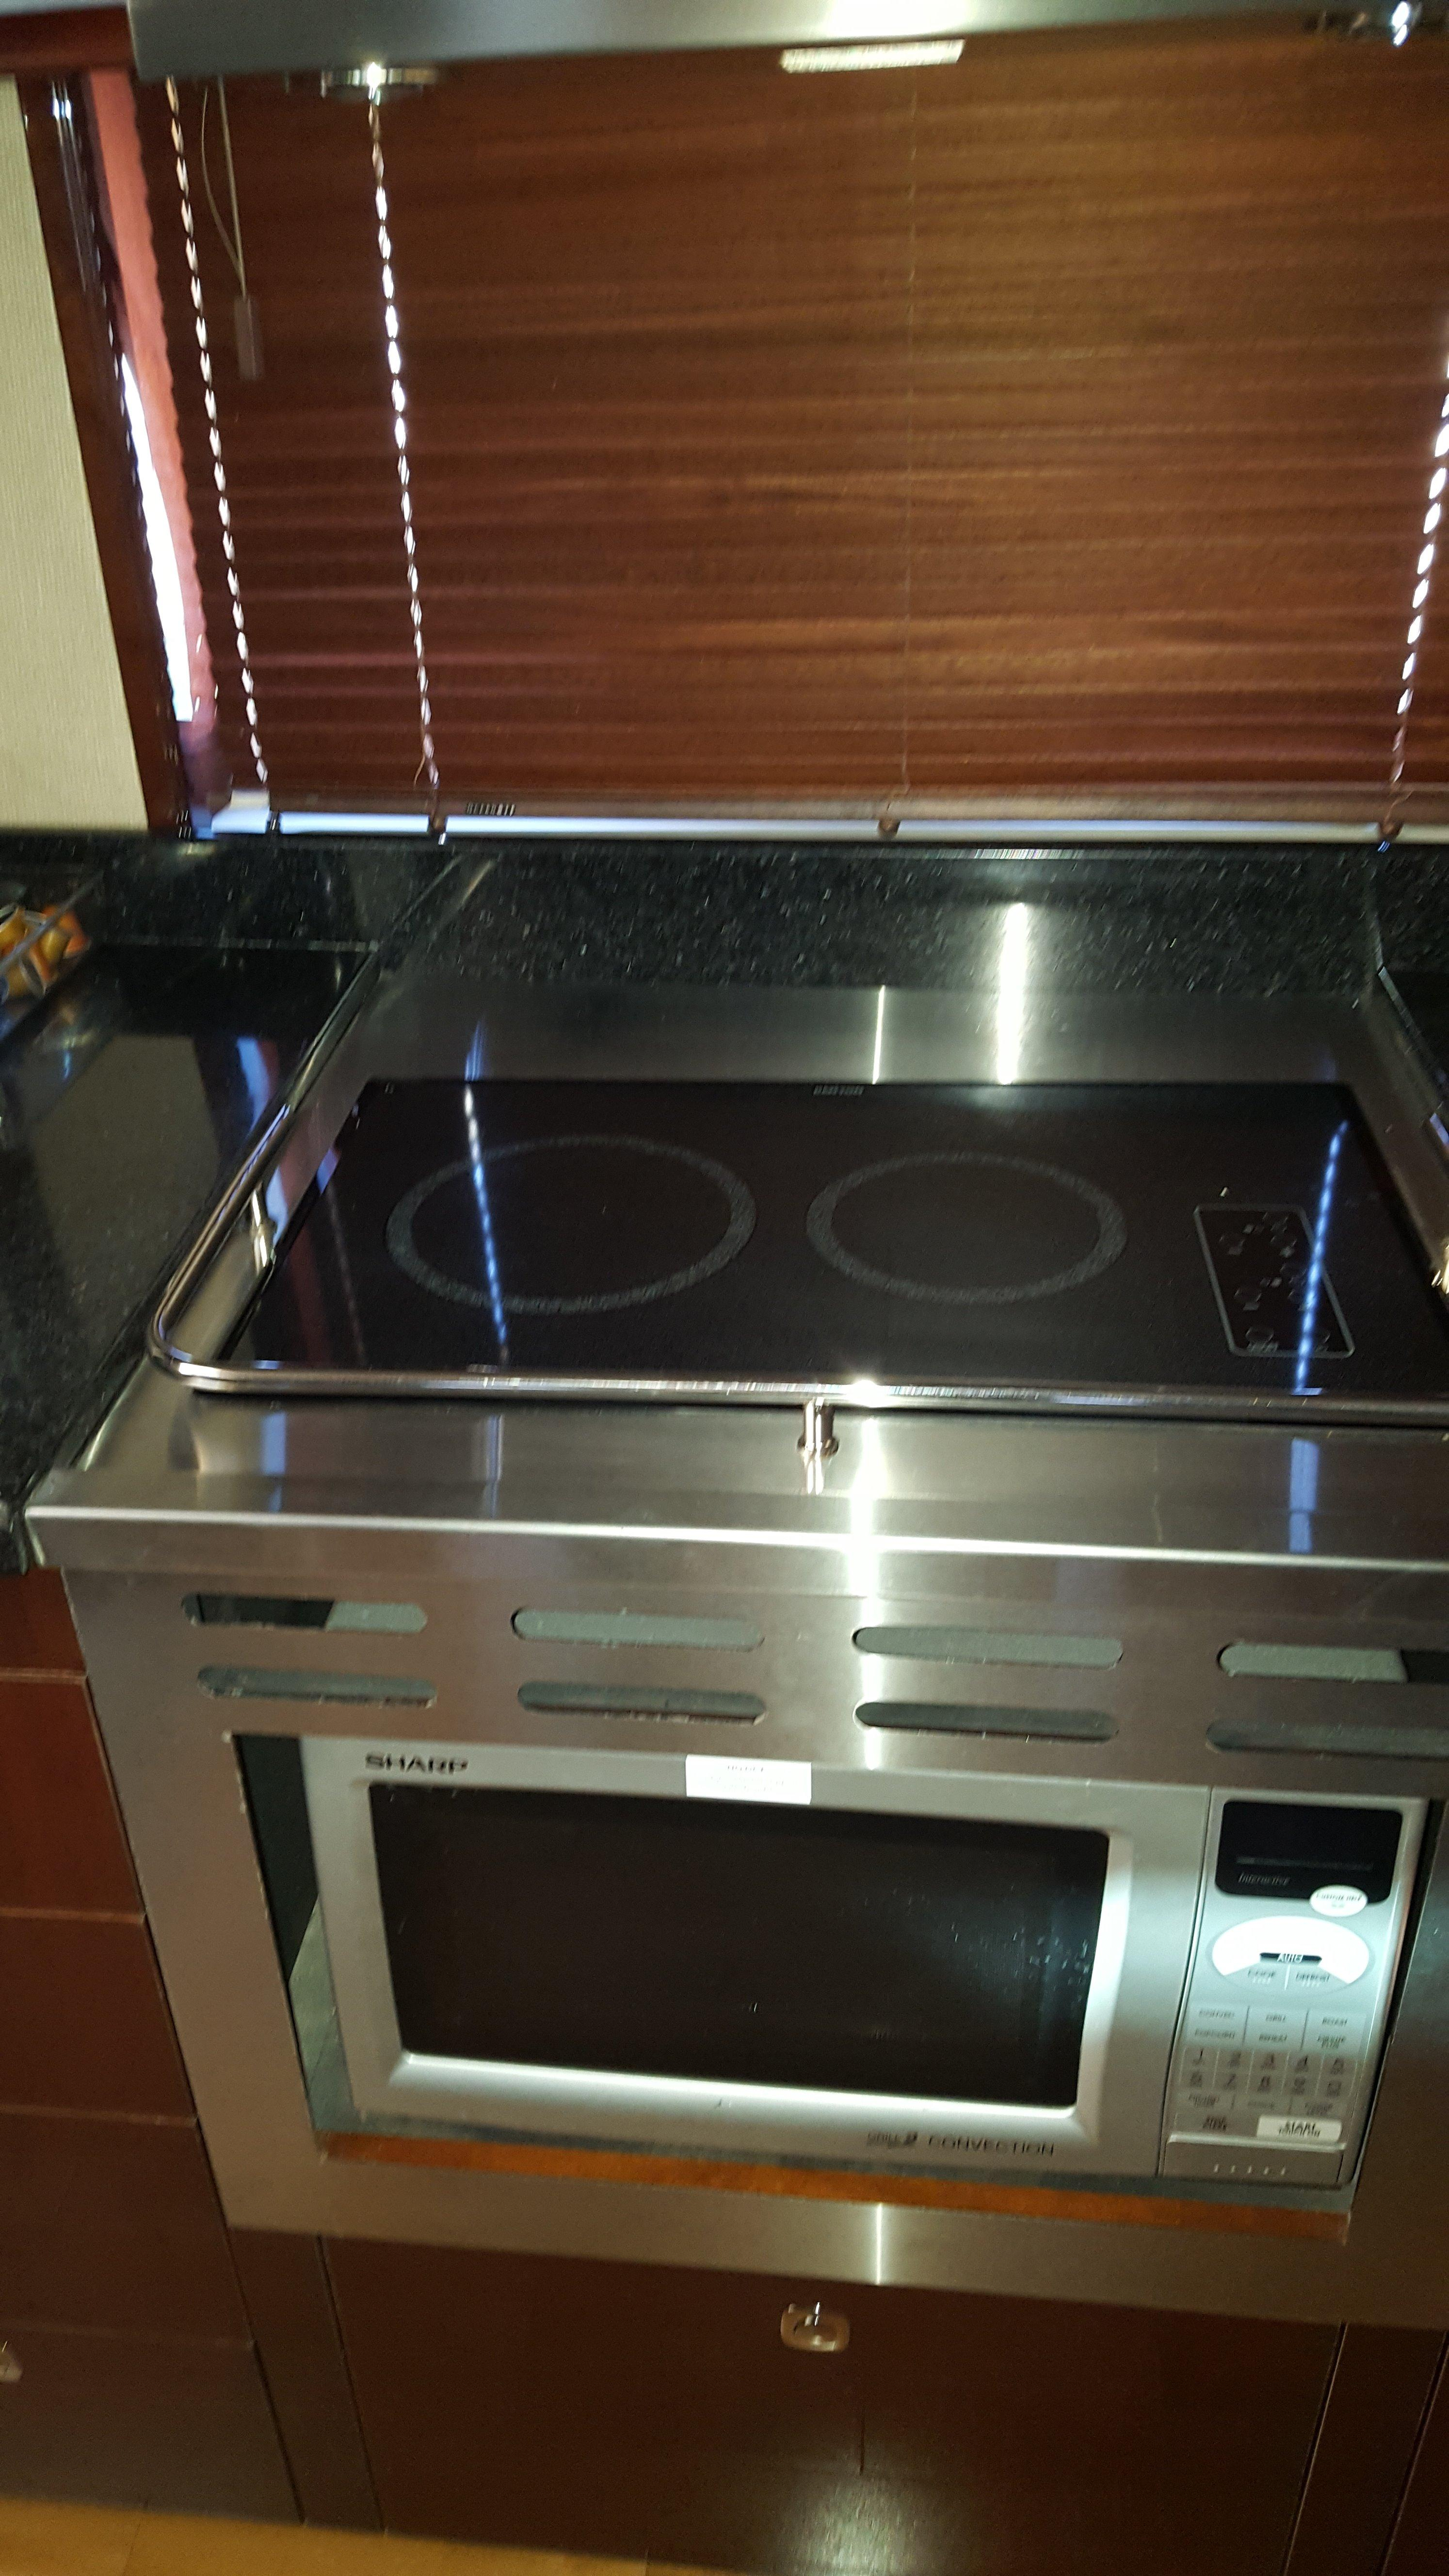 Electric range and Microwave oven.